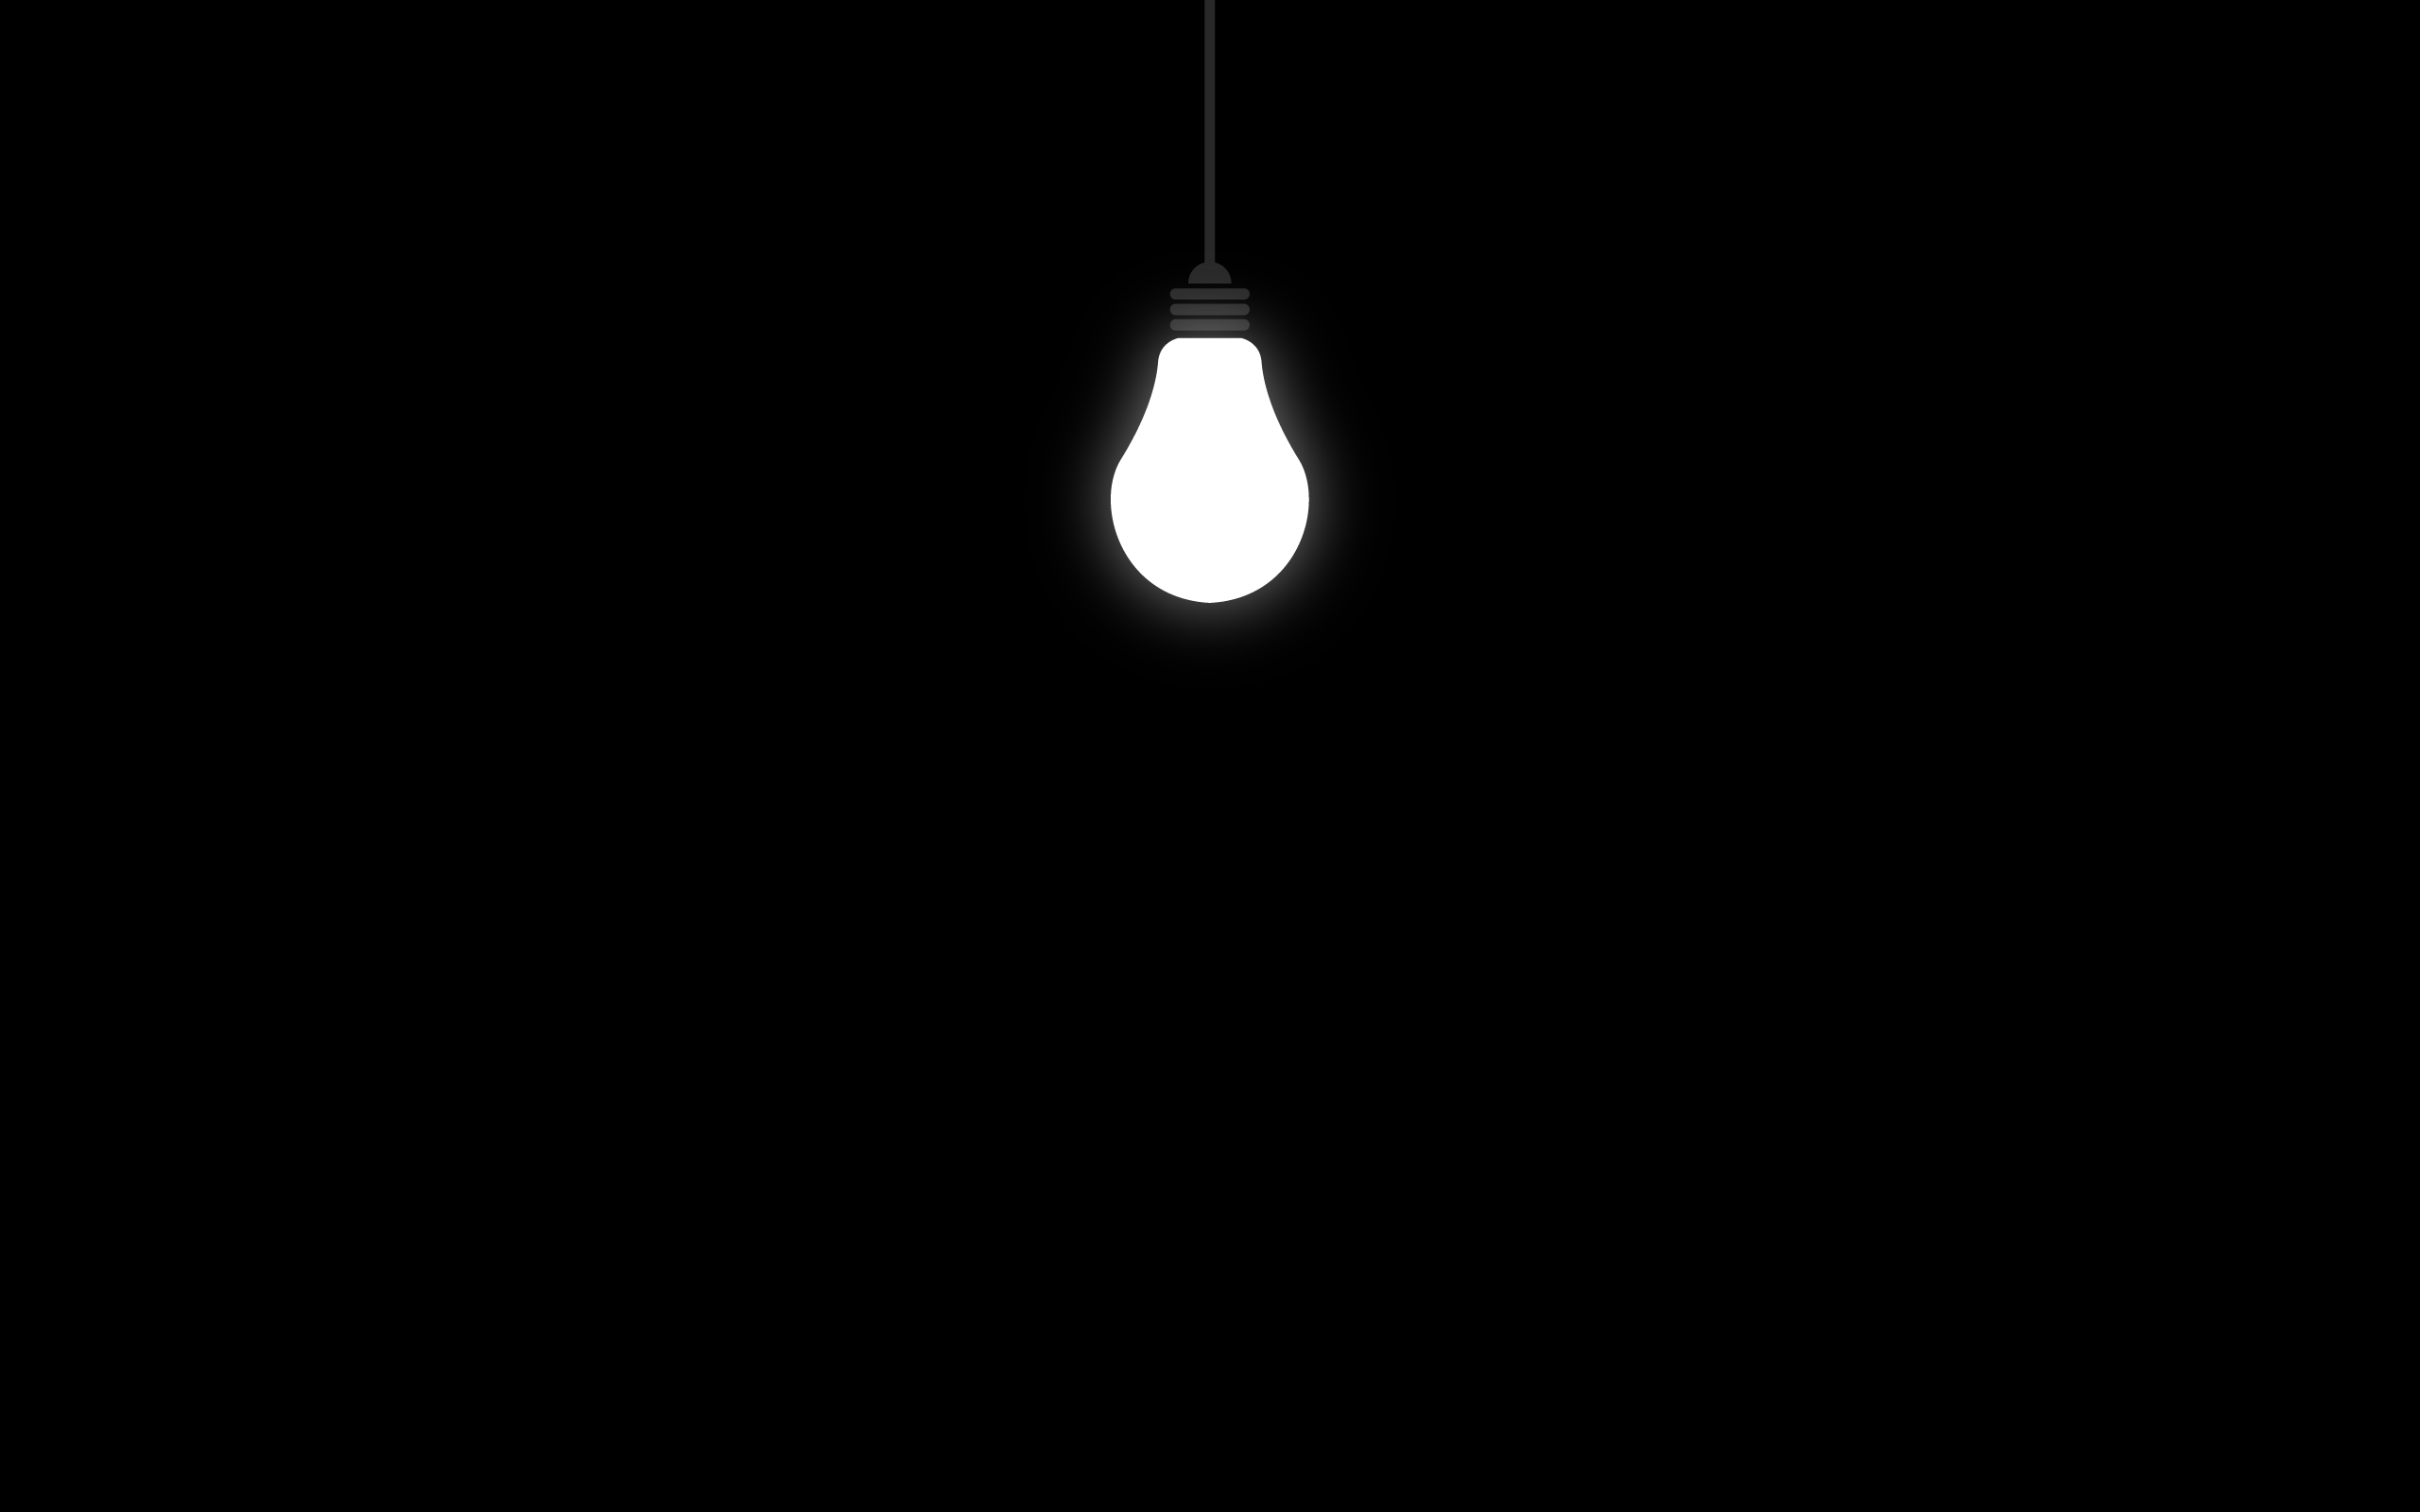 Amoled Wallpapers Wallpaper Cave